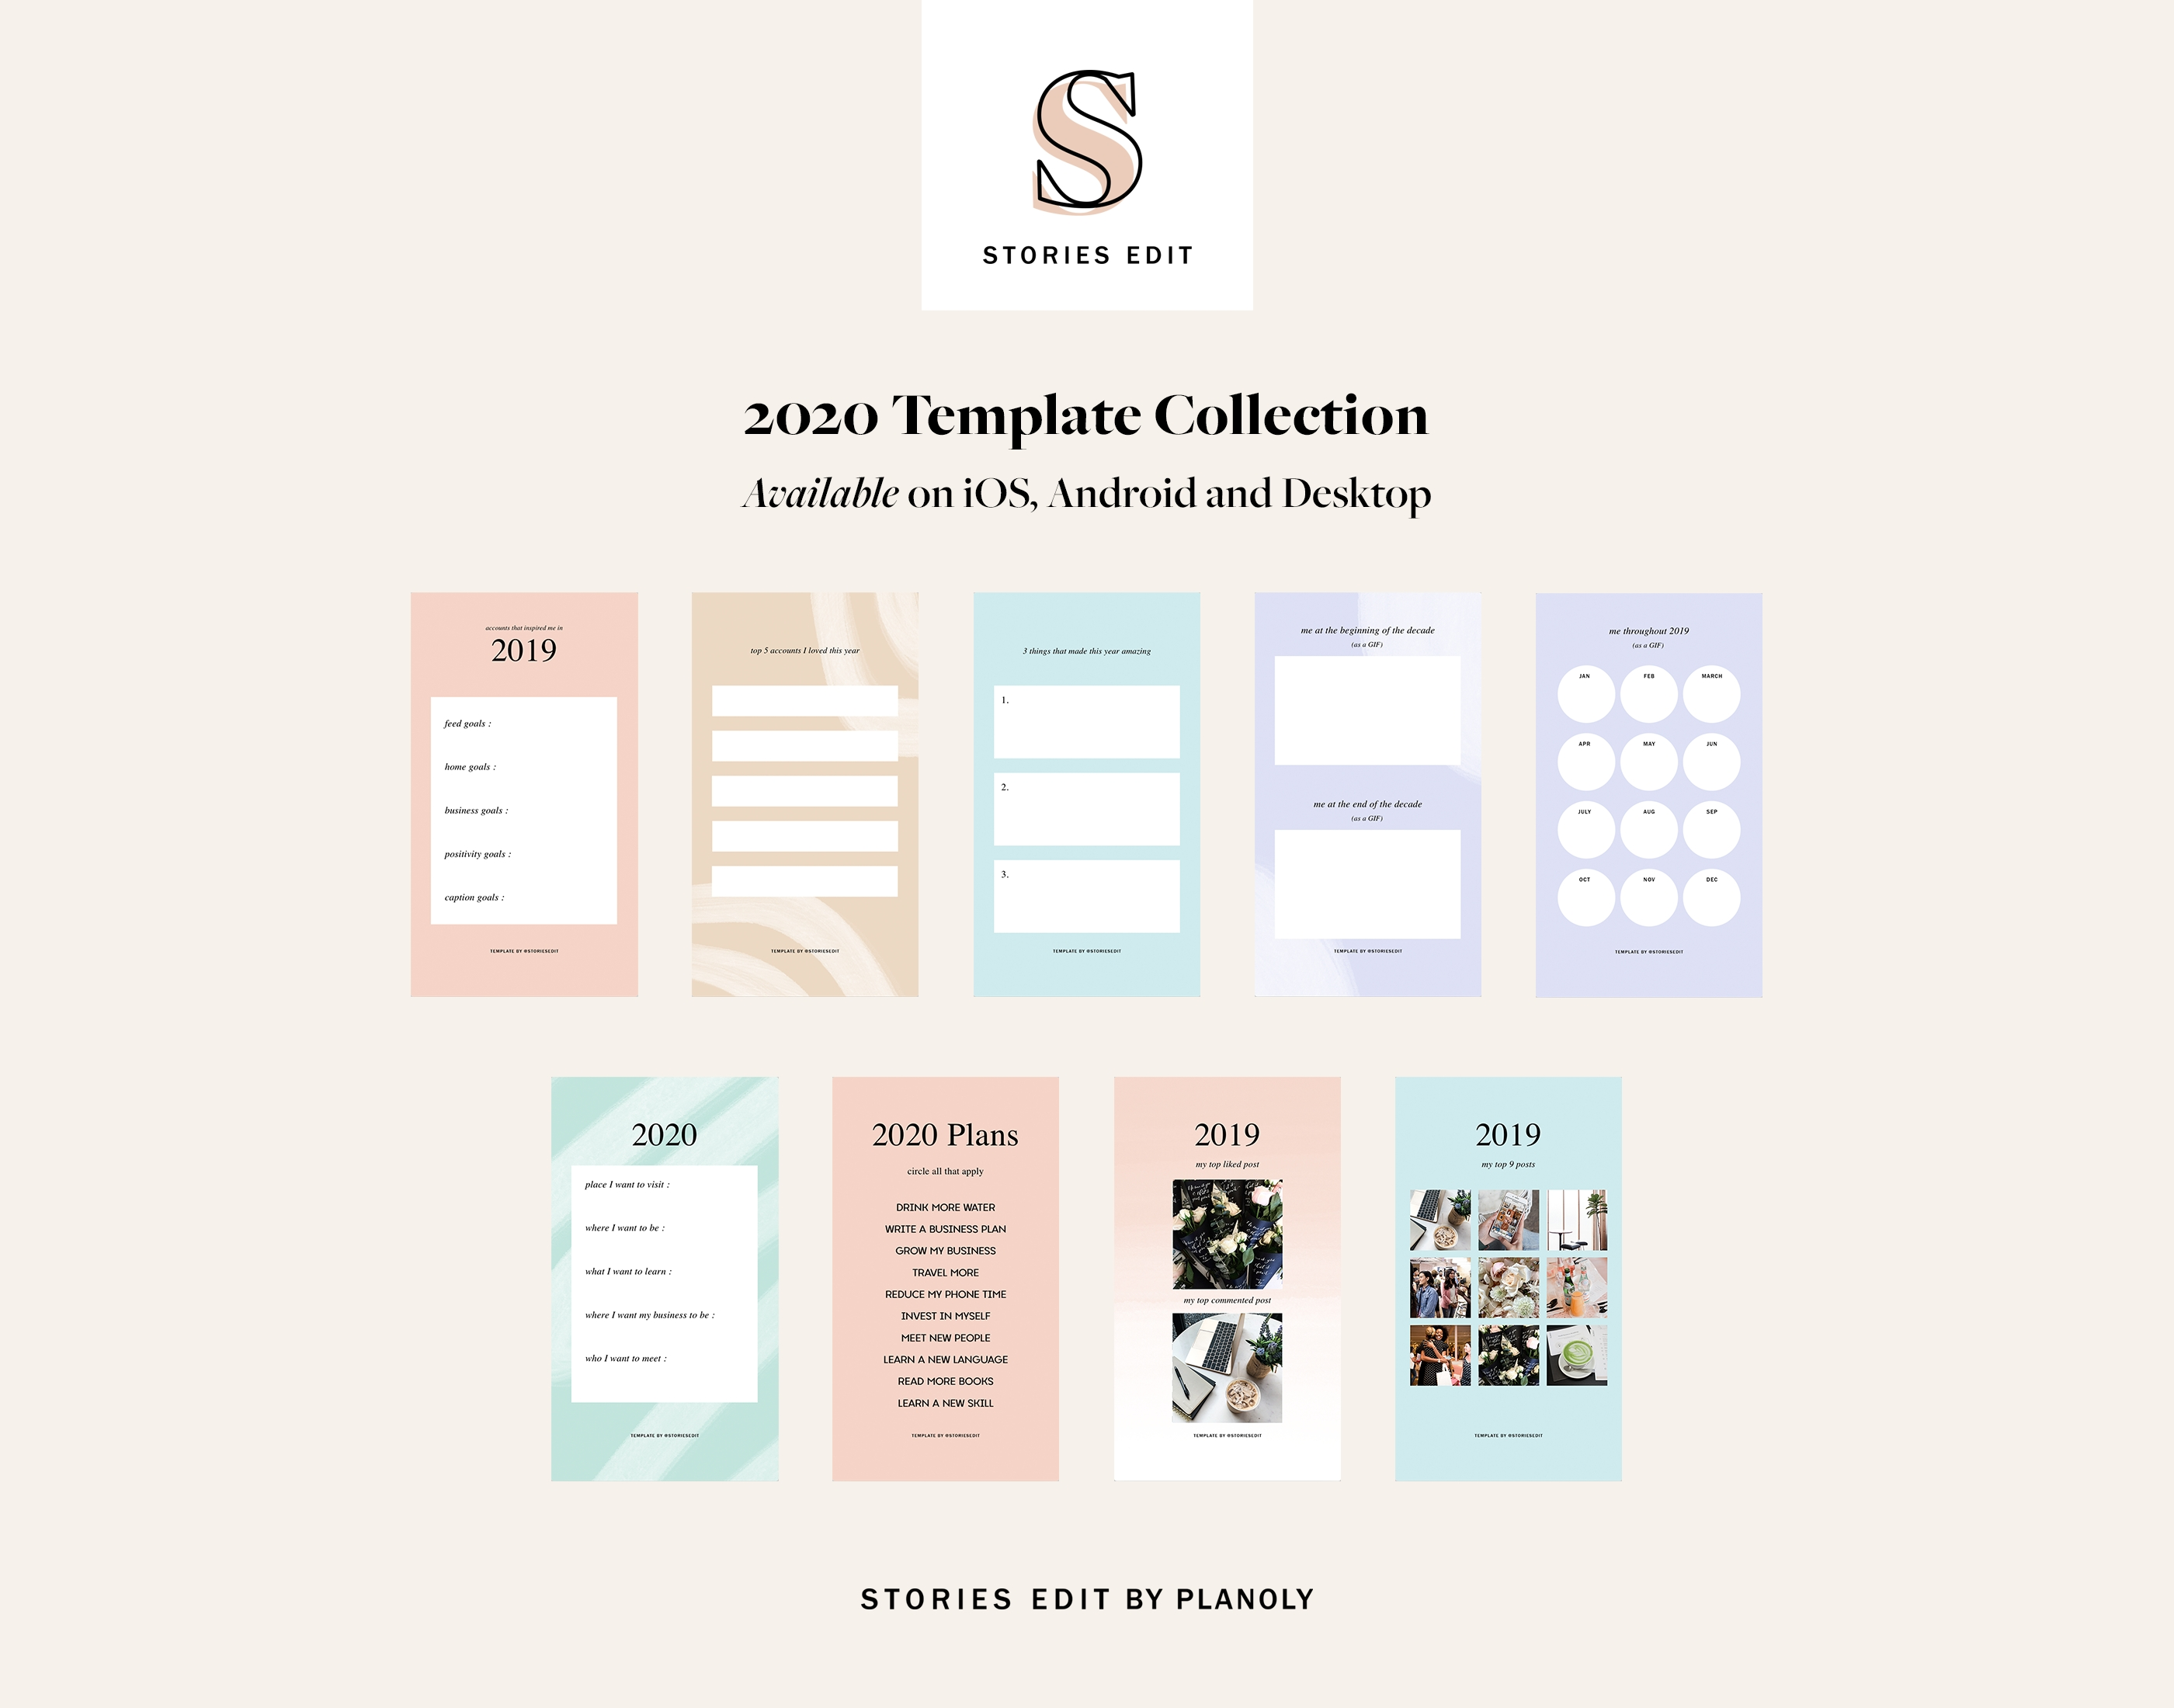 Storiesedit 2020: How To Use Our Templates Collection-Blog Post Schedule Template 2020